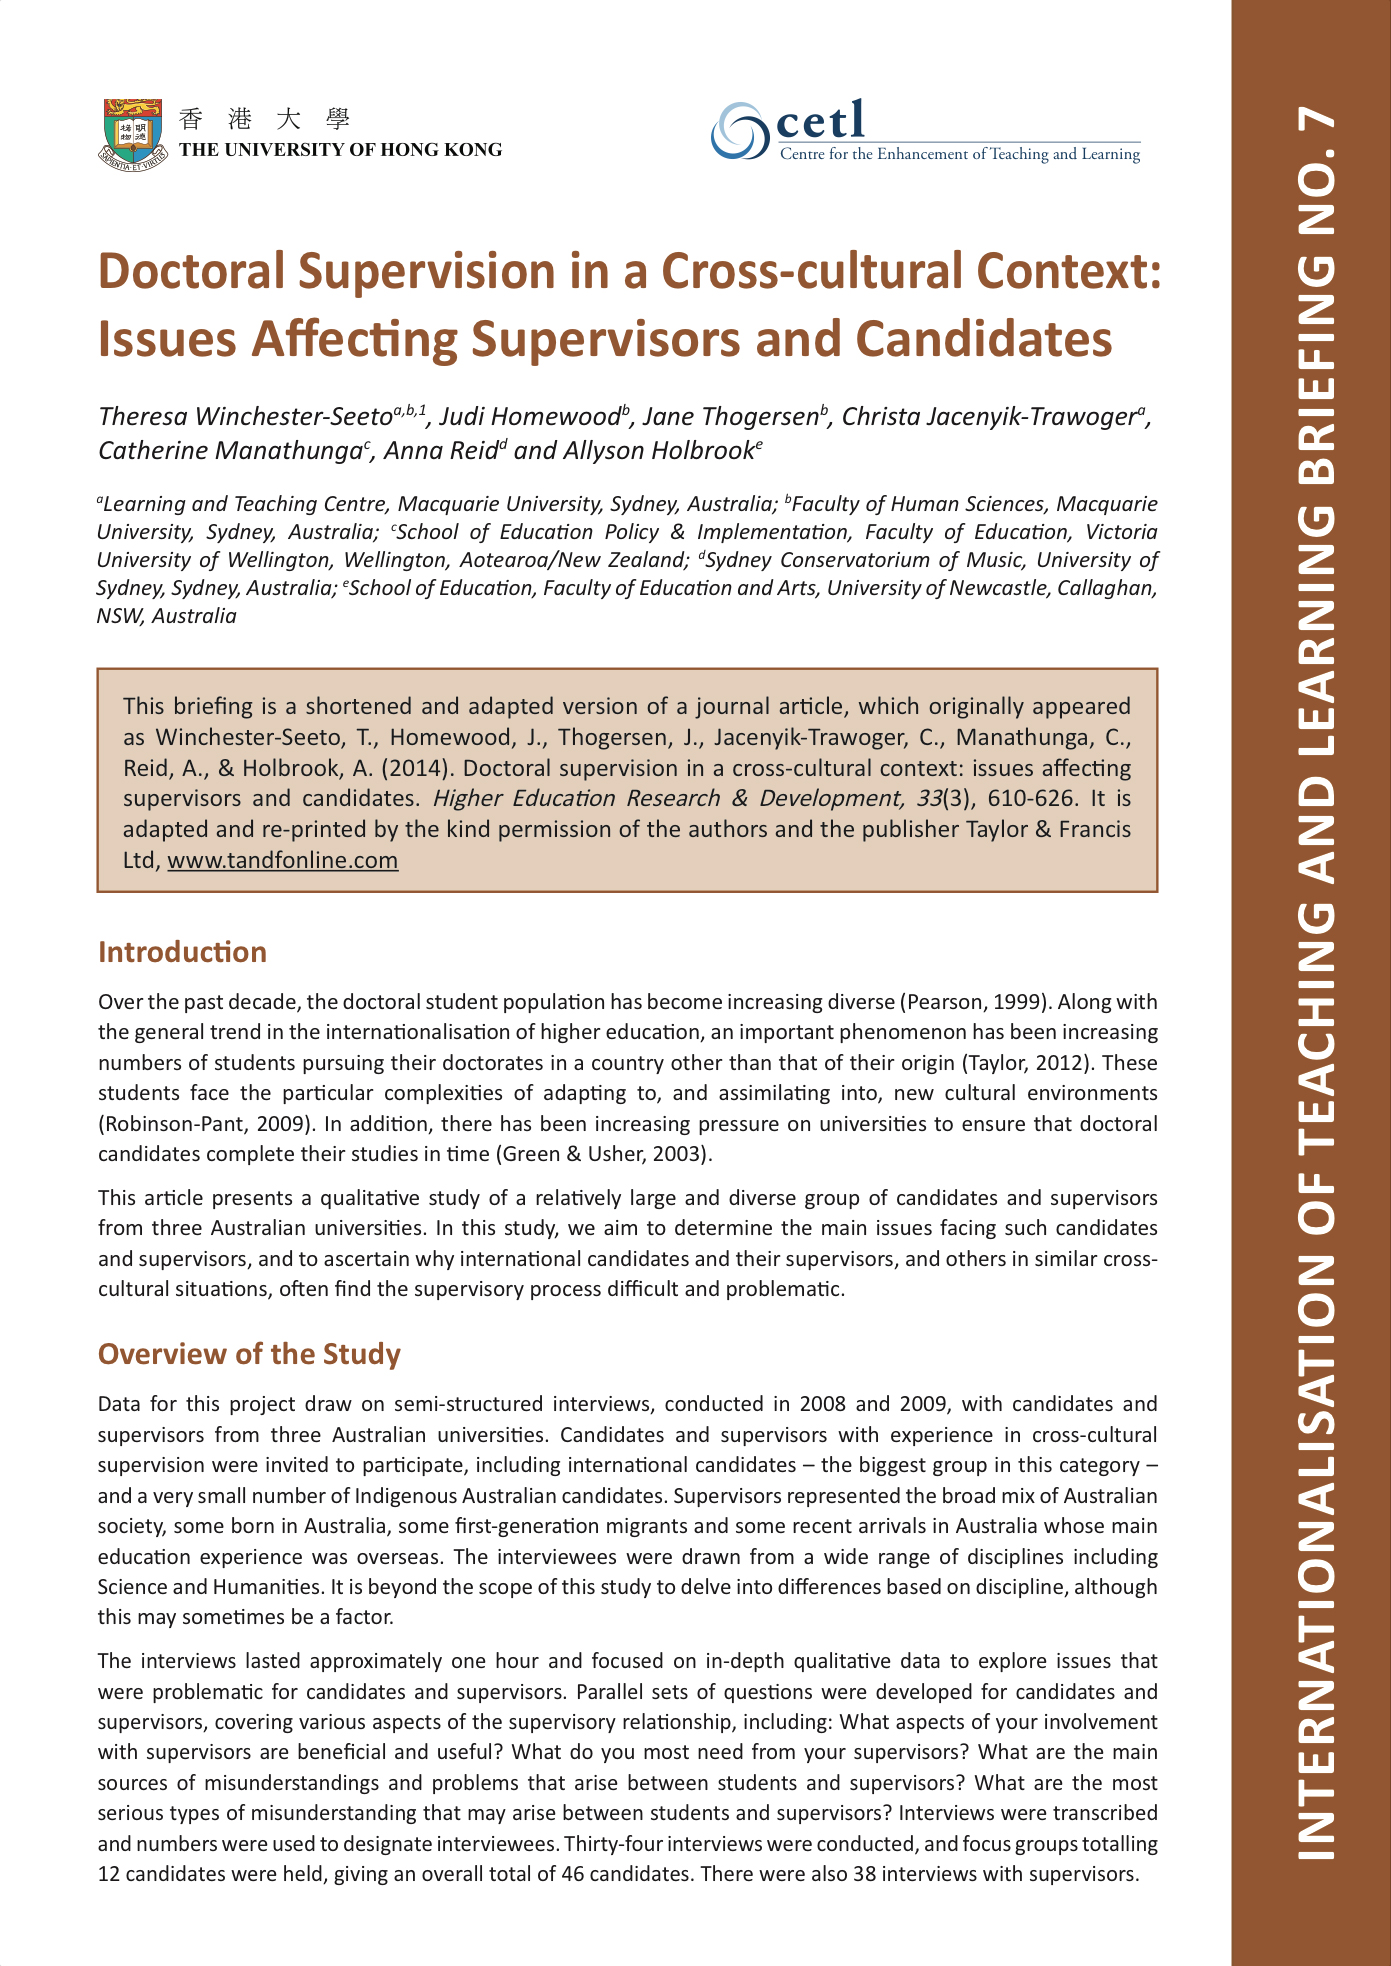 7. Doctoral Supervision in a Cross-cultural Context: Issues Affecting Supervisors and Candidates